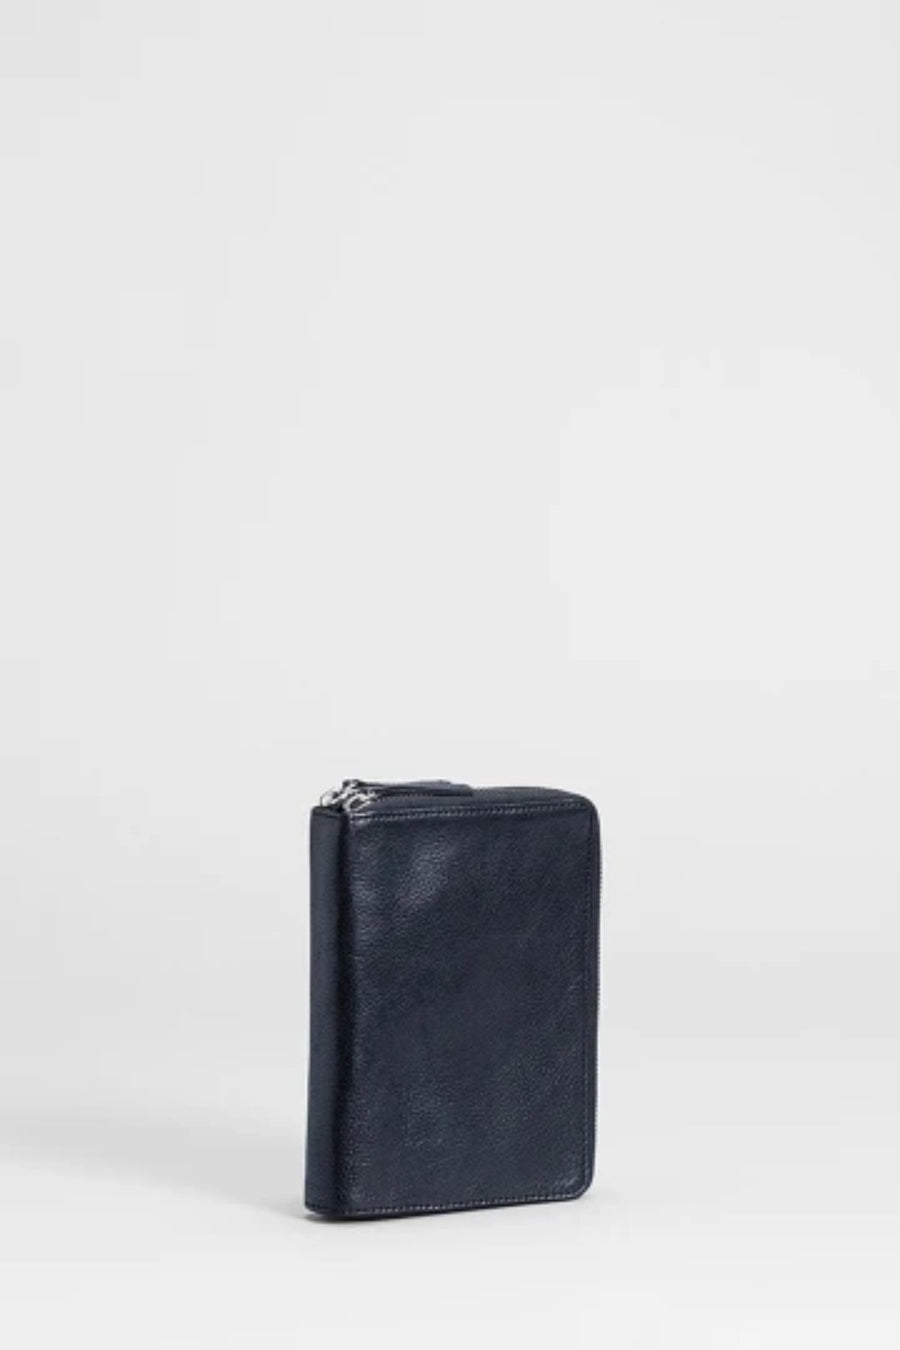 Arien Passport Wallet - Shop Online At Mookah - mookah.com.au